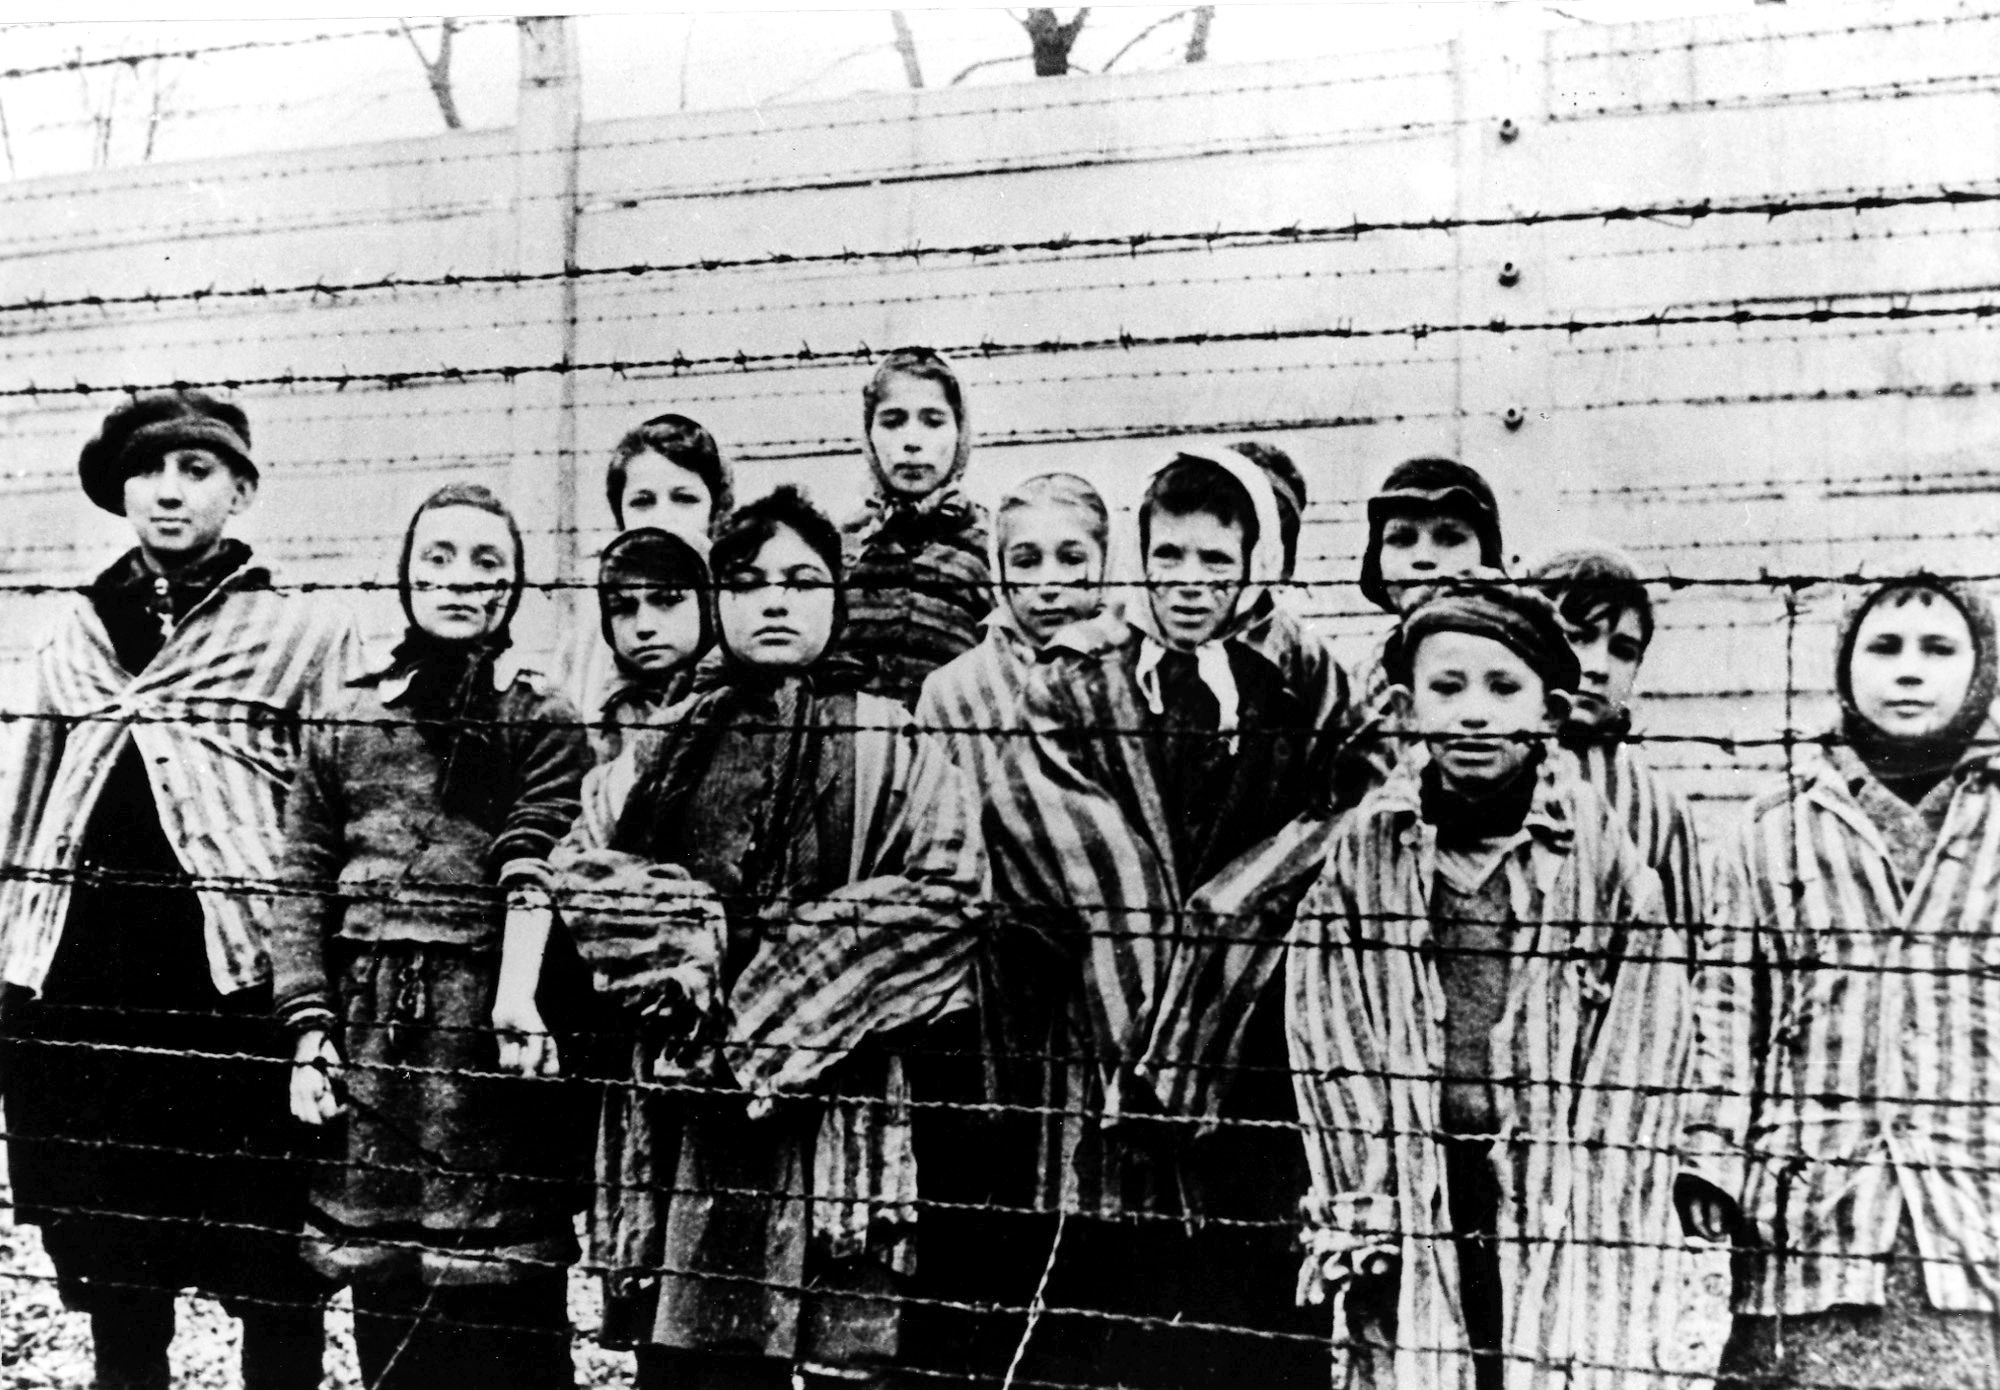 A picture taken just after the liberation by the Soviet army in January, 1945, shows a group of children wearing concentration camp uniforms at the time behind barbed wire fencing in the Oswiecim (Auschwitz) nazi concentration camp. (AP Photo/CAF pap, file)